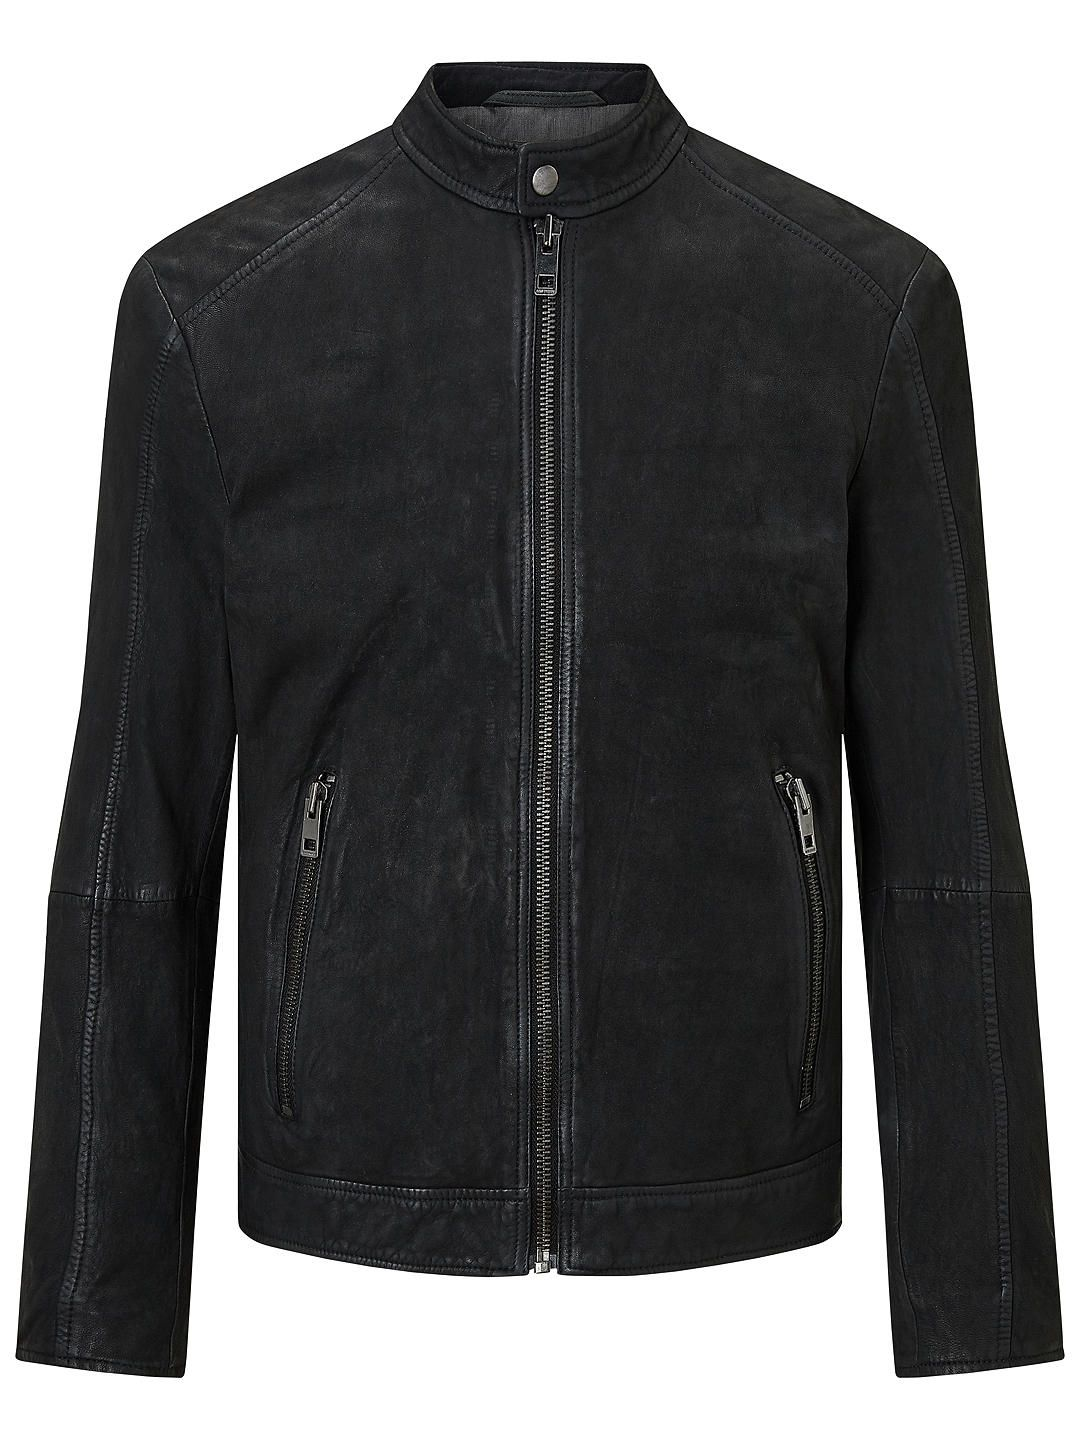 HUGO BOSS Jonate Slim Fit Biker Jacket, Black Fitted